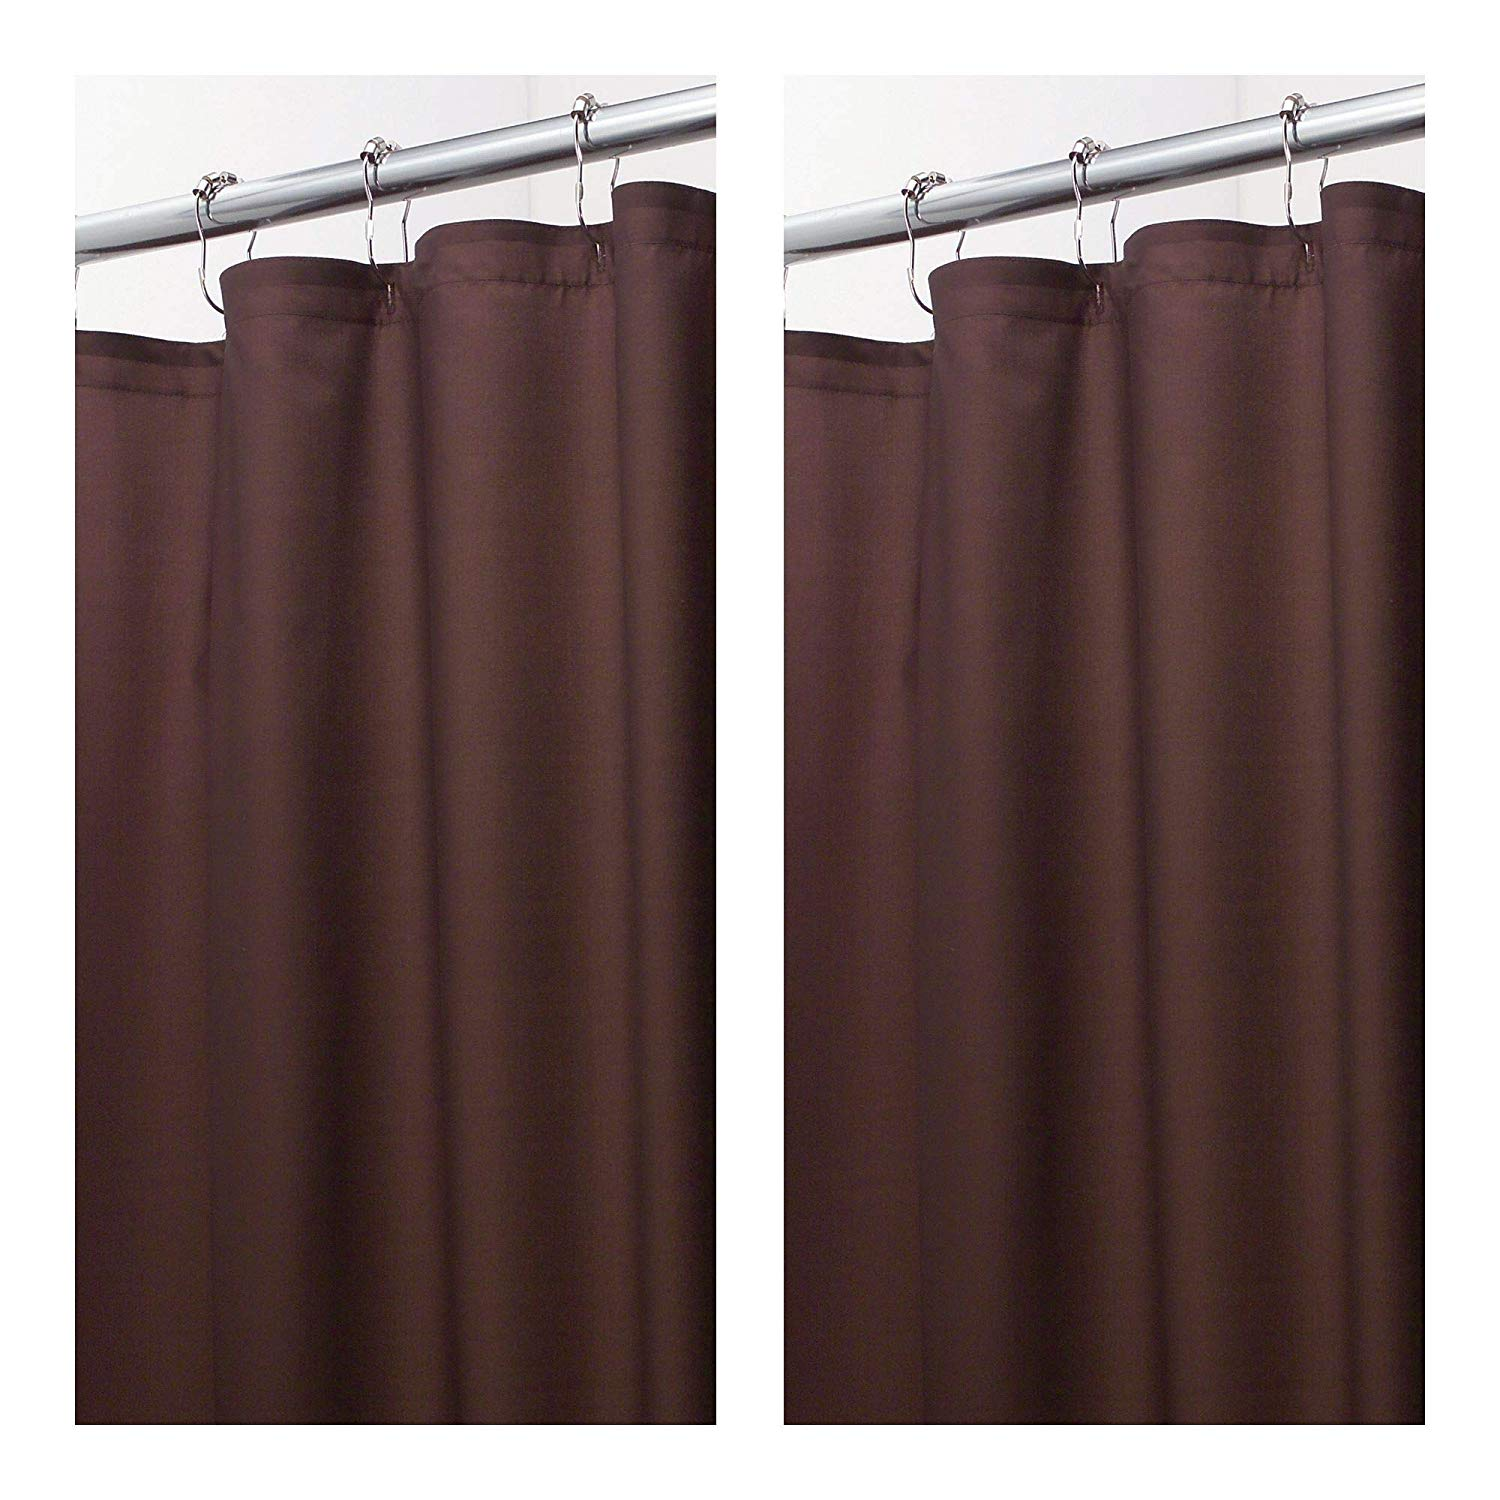 Get Quotations MDesign Extra Wide Water Repellent Mildew Resistant Heavy Duty Flat Weave Fabric Shower Curtain